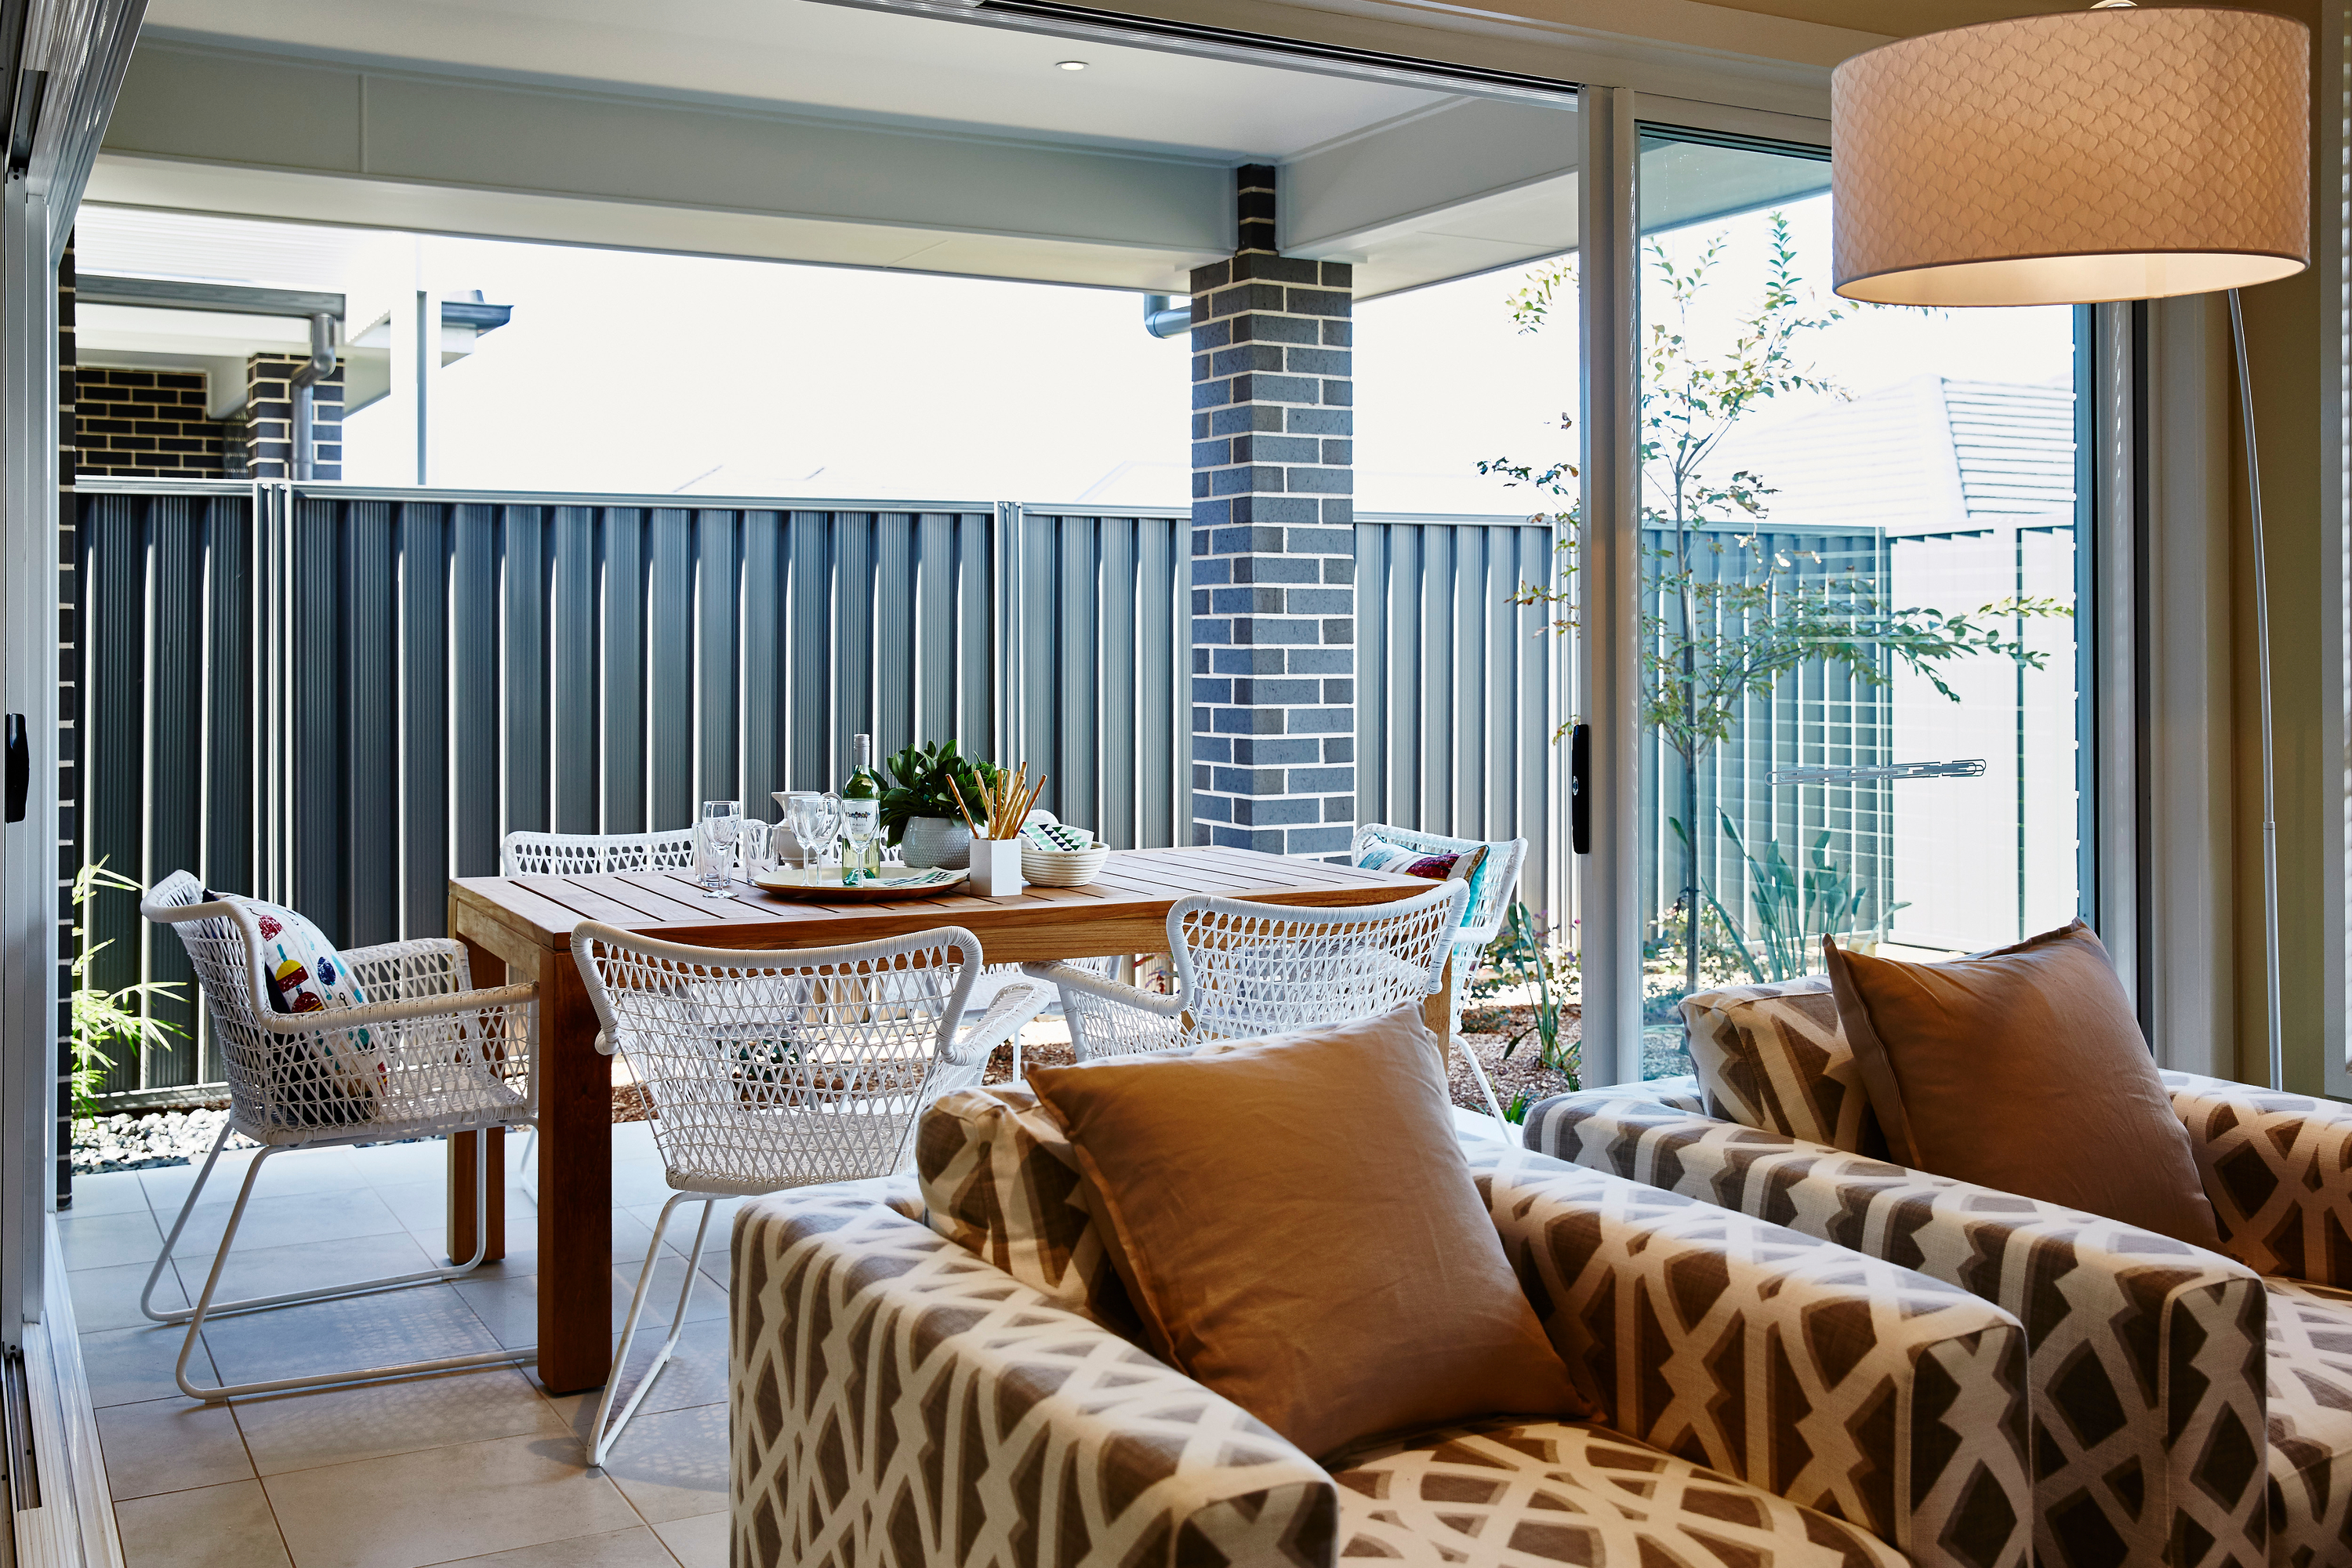 If you watch HGTV, then you've probably seen Christina on the Coast. Check out these Christina on the Coast designs to incorporate in your home. Indoor/outdoor living areas are so popular.